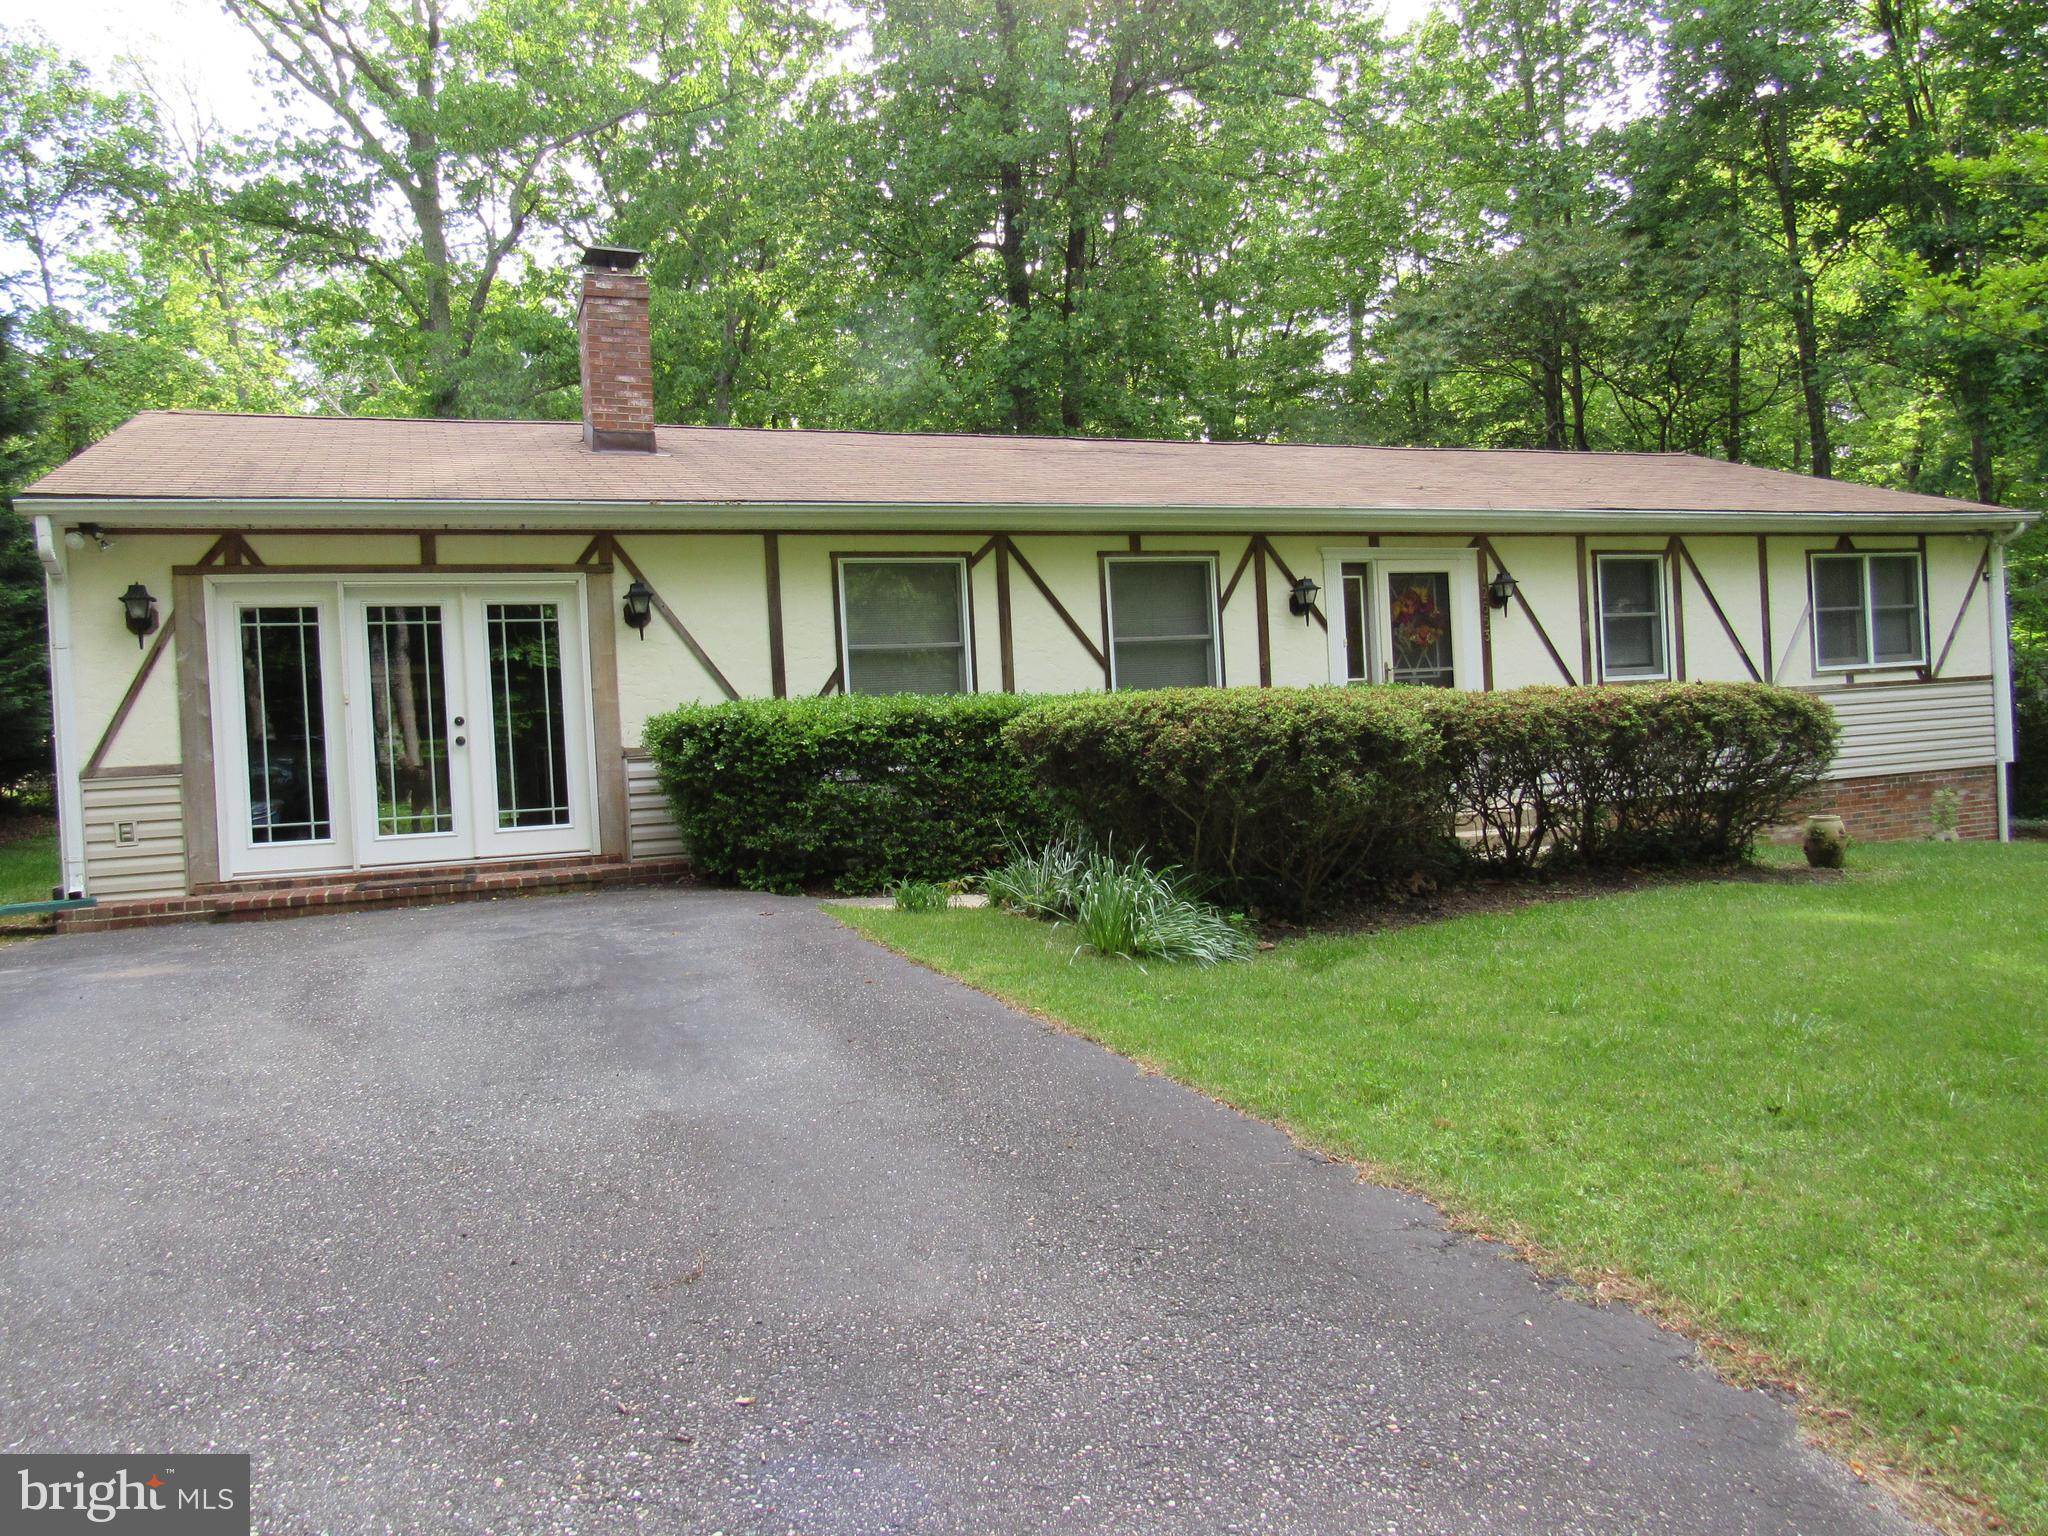 Nice Rambler with 3 Bedrooms and 2 baths on mostly level lot waiting to be yours.  This is an estate